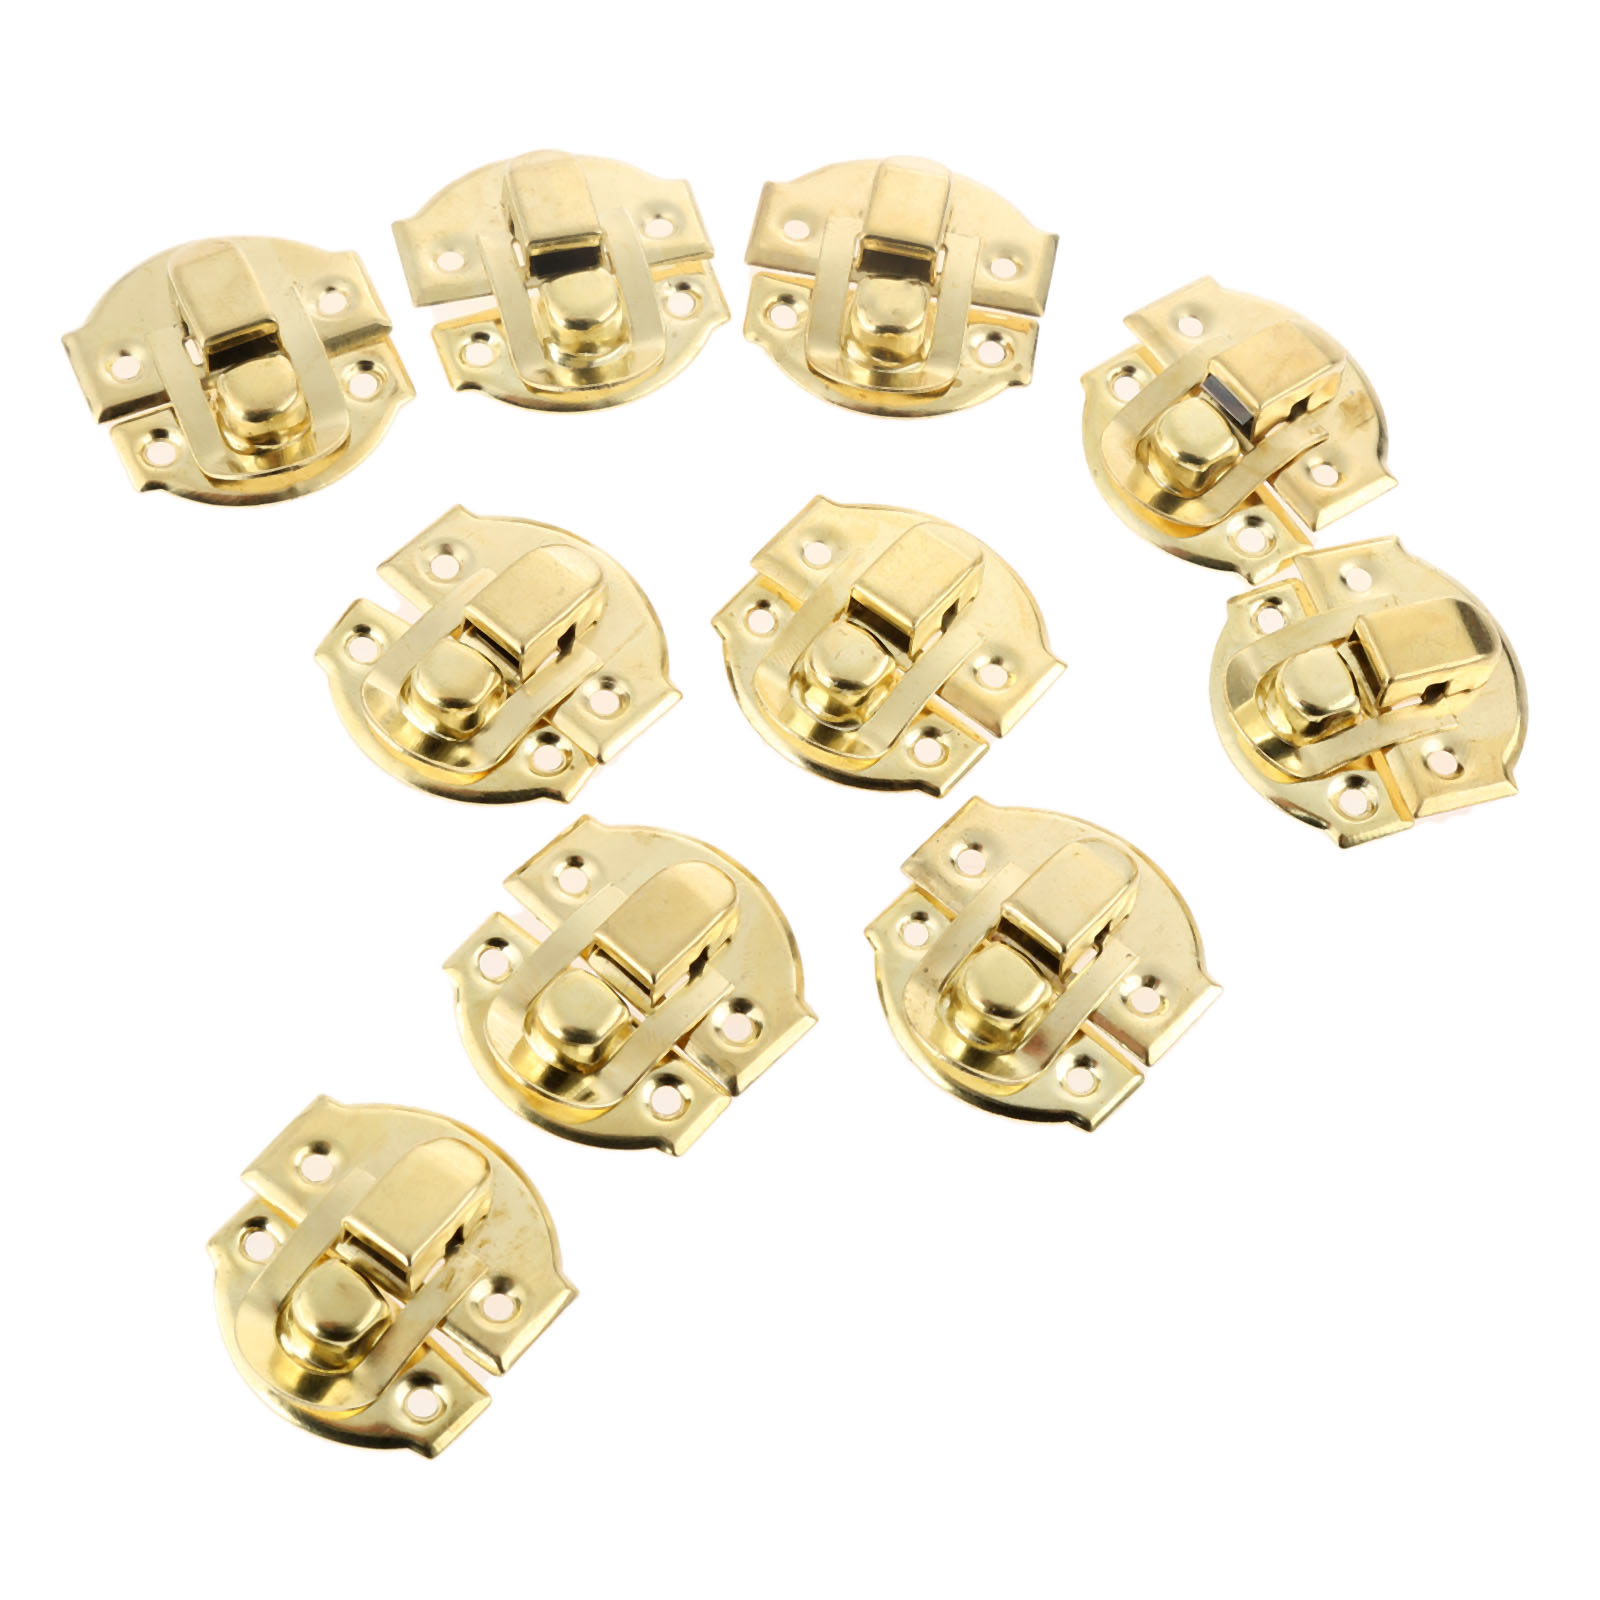 10Pcs Antique Gold Box Hasps Iron Lock Catch Latches for Jewelry Chest Box Suitcase Buckle Clip Clasp Vintage Hardware 27*29mm metal hasps john lone butterfly lock nasal air box lock cold rolled steel fastener box clasp lock catch hardware